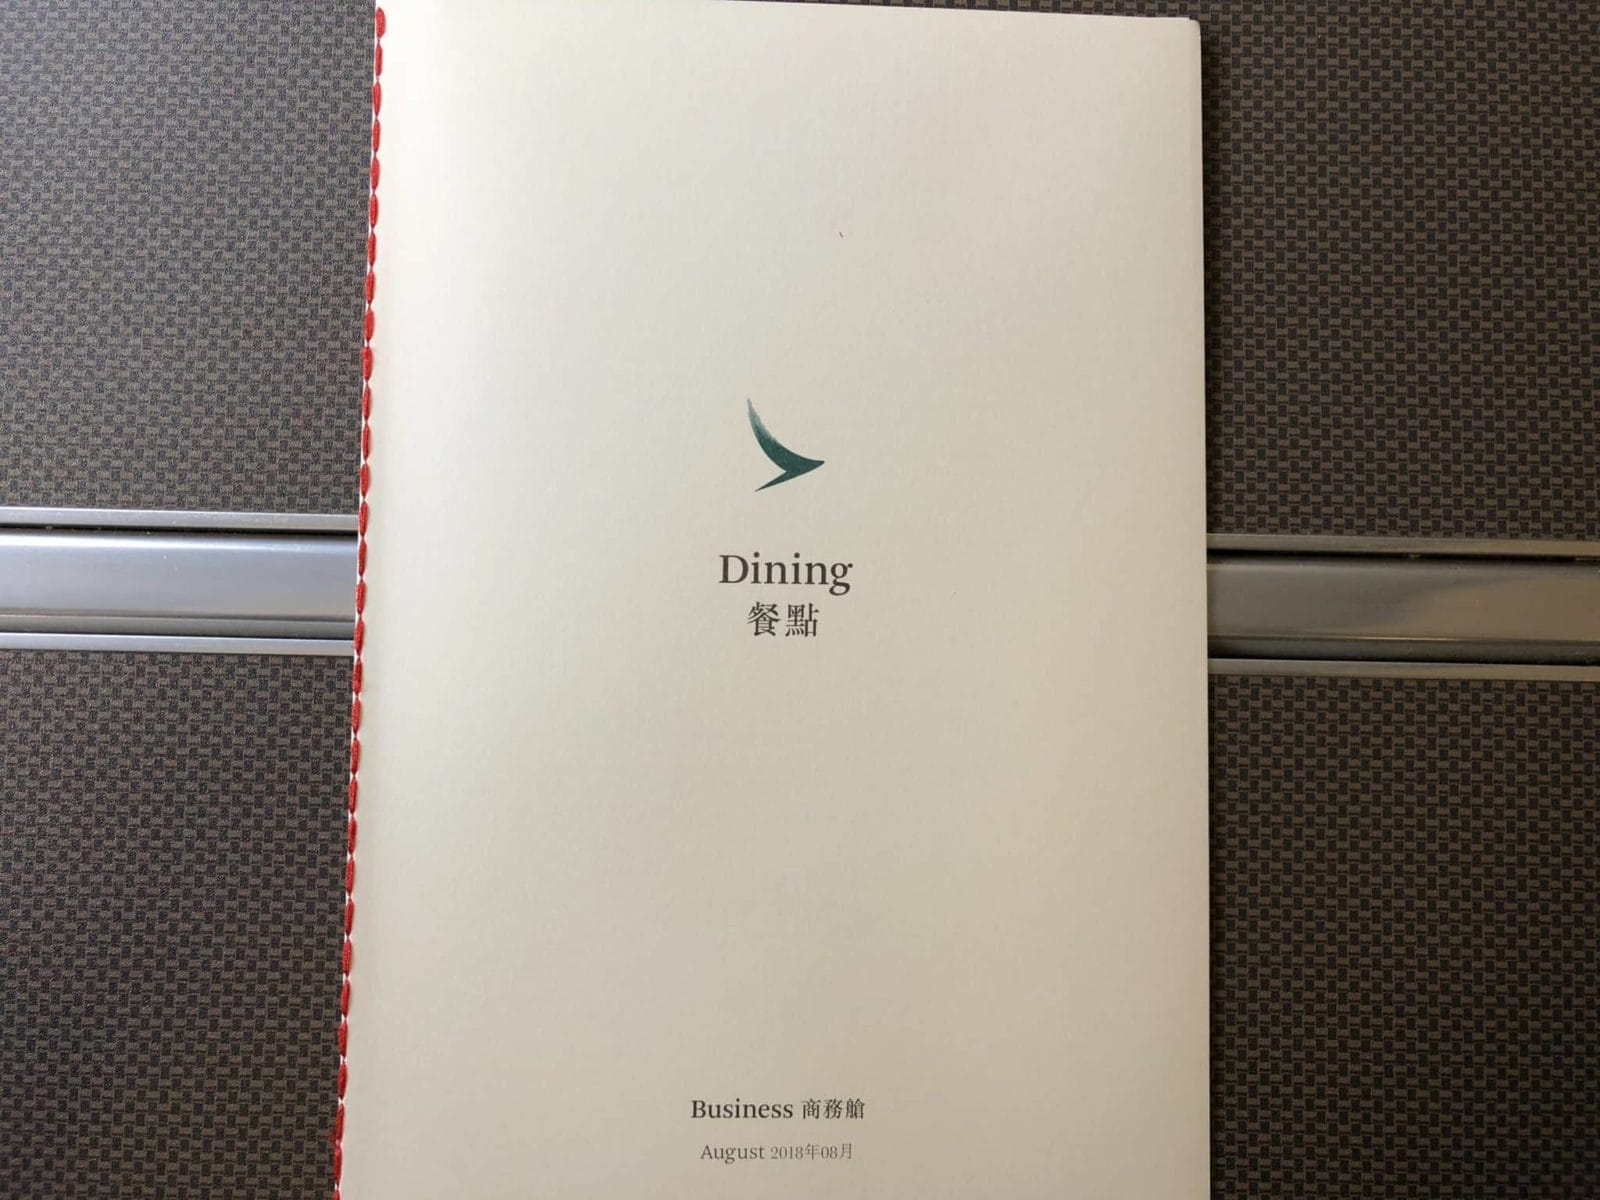 Cathay Pacific Business Class A330 Speisekarte